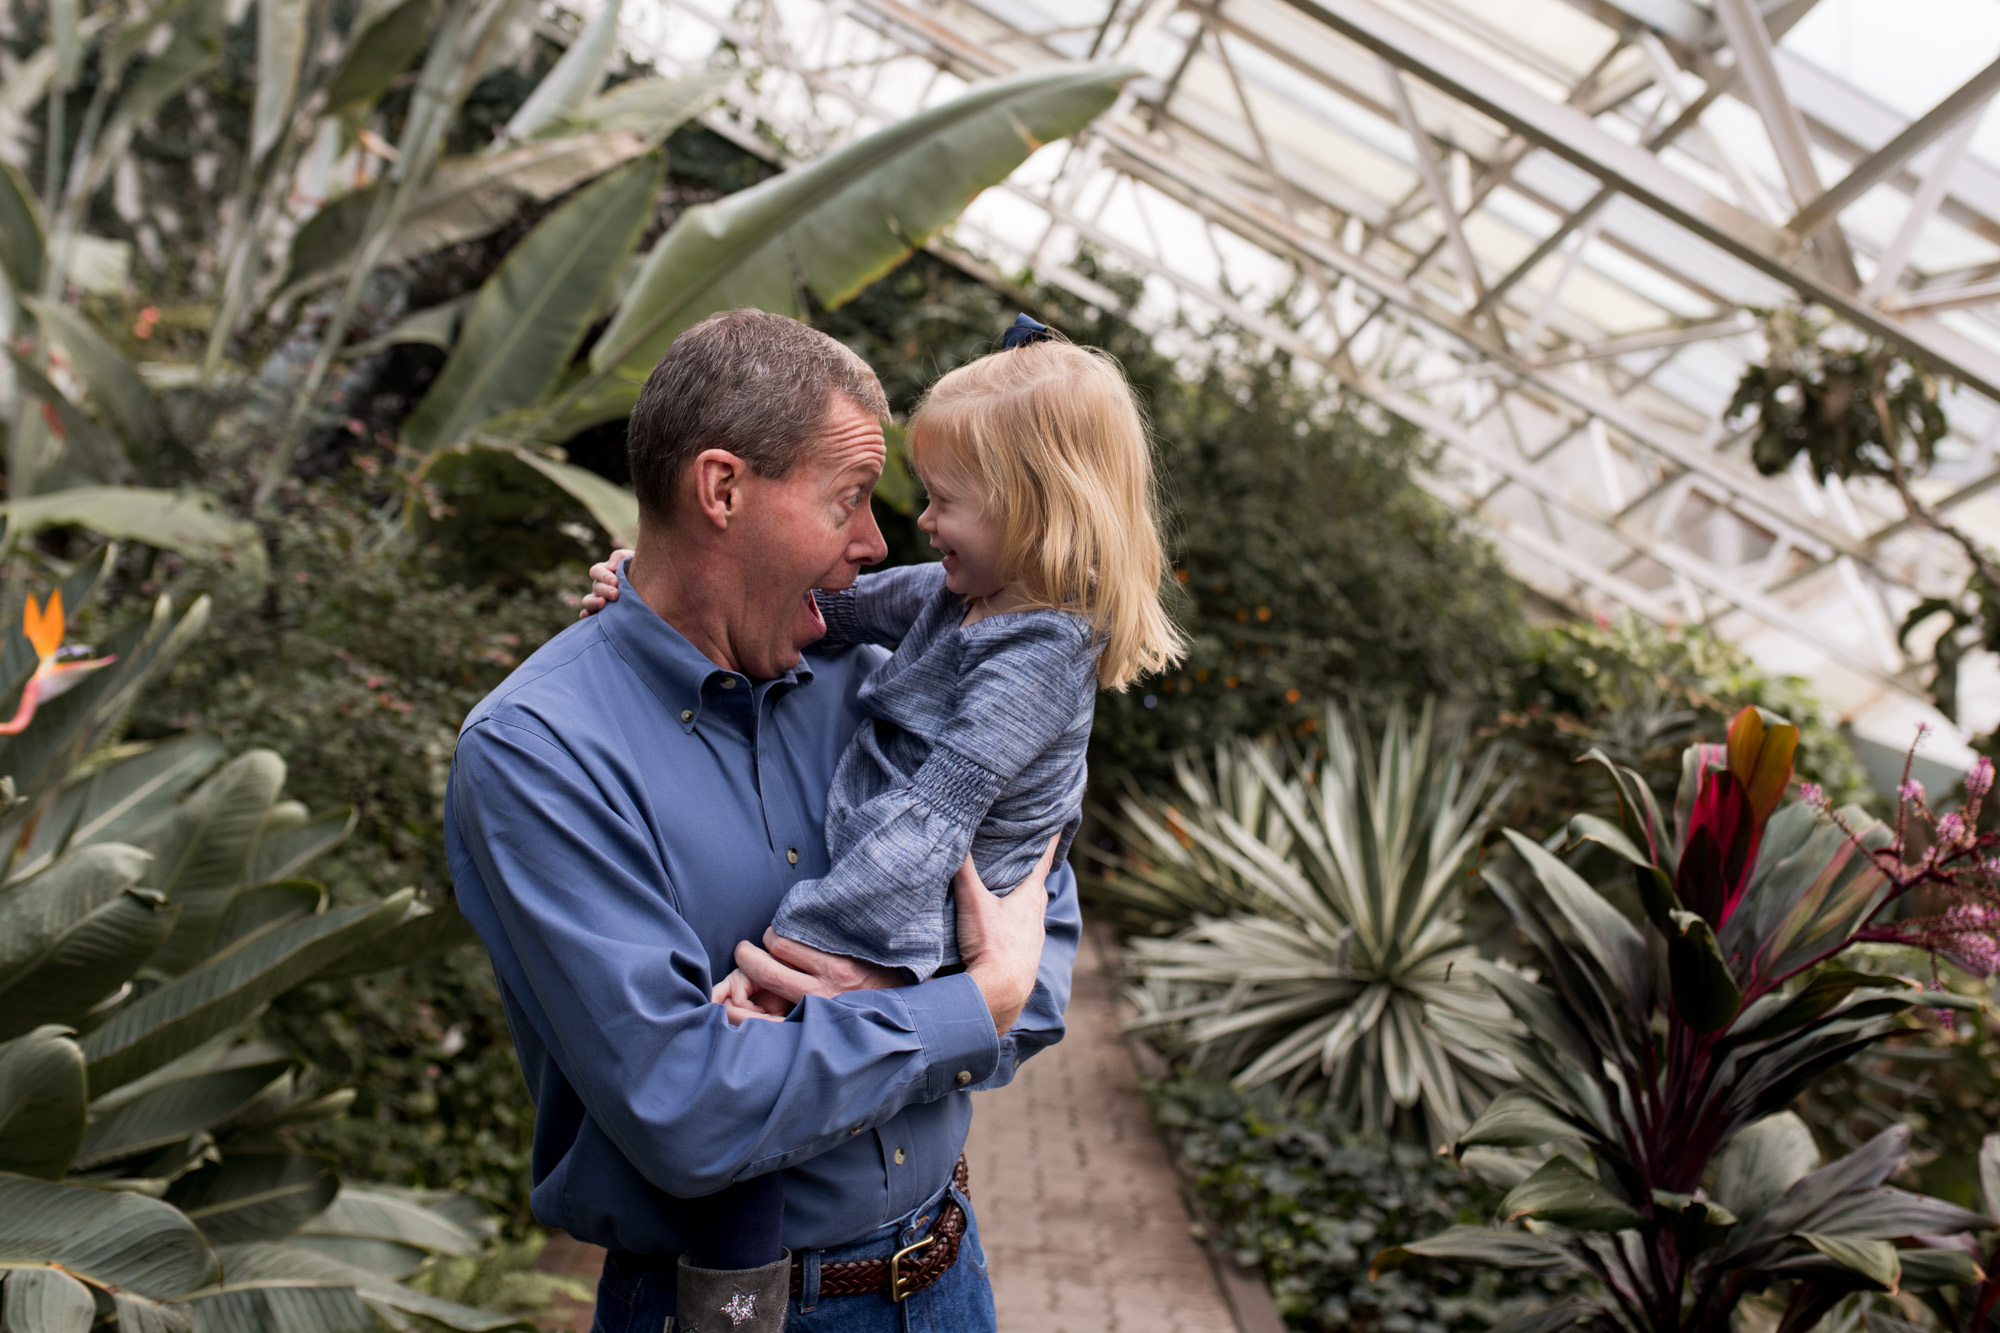 grandpa and granddaughter during family session at Foellinger-Freimann Botanical Conservatory in Fort Wayne Indiana